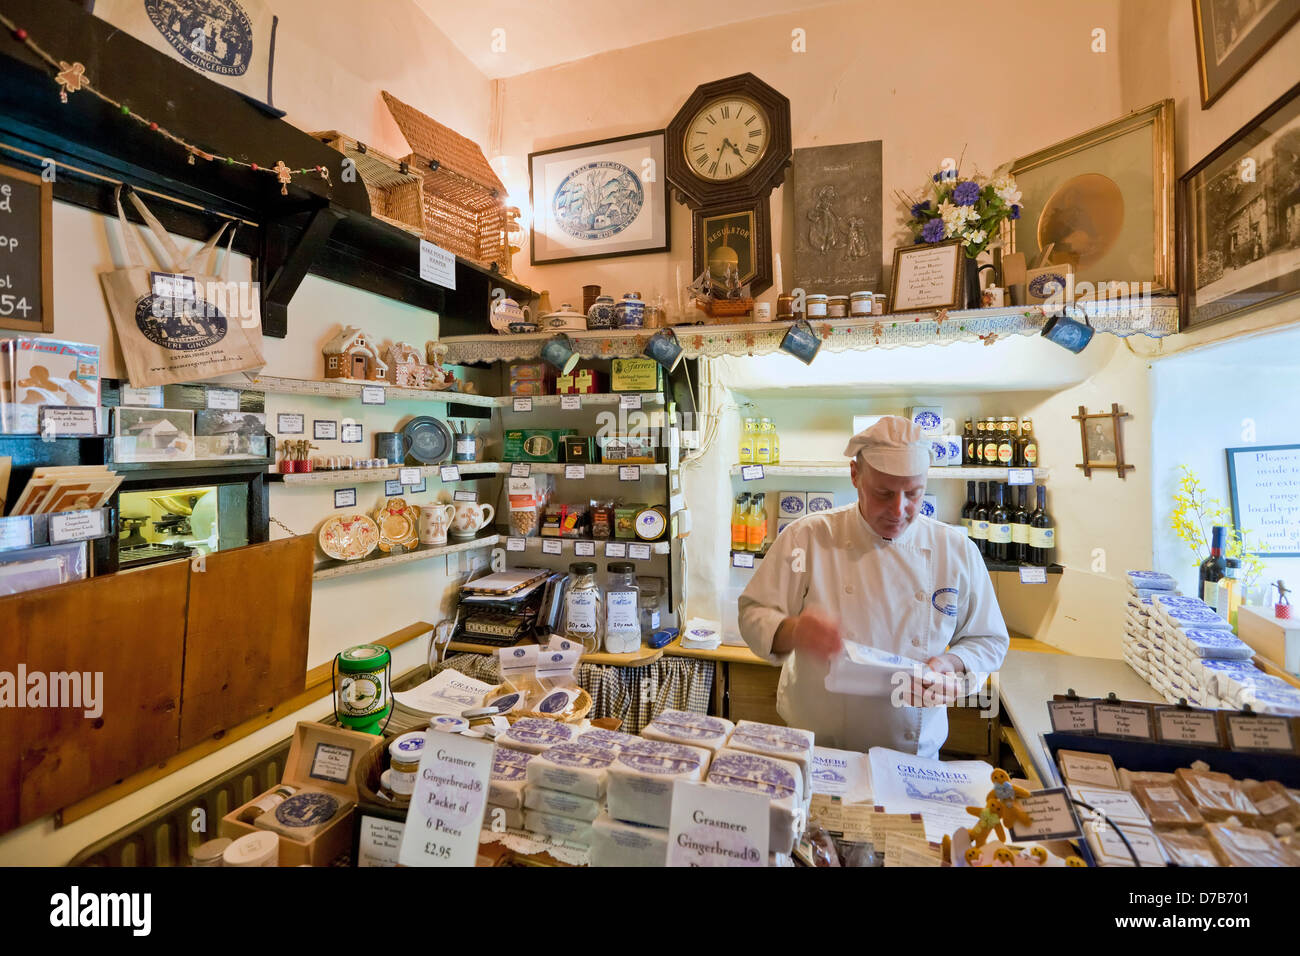 Man working inside the Grasmere gingerbread shop, a traditional biscuit cake made on the premises Grasmere Village - Stock Image